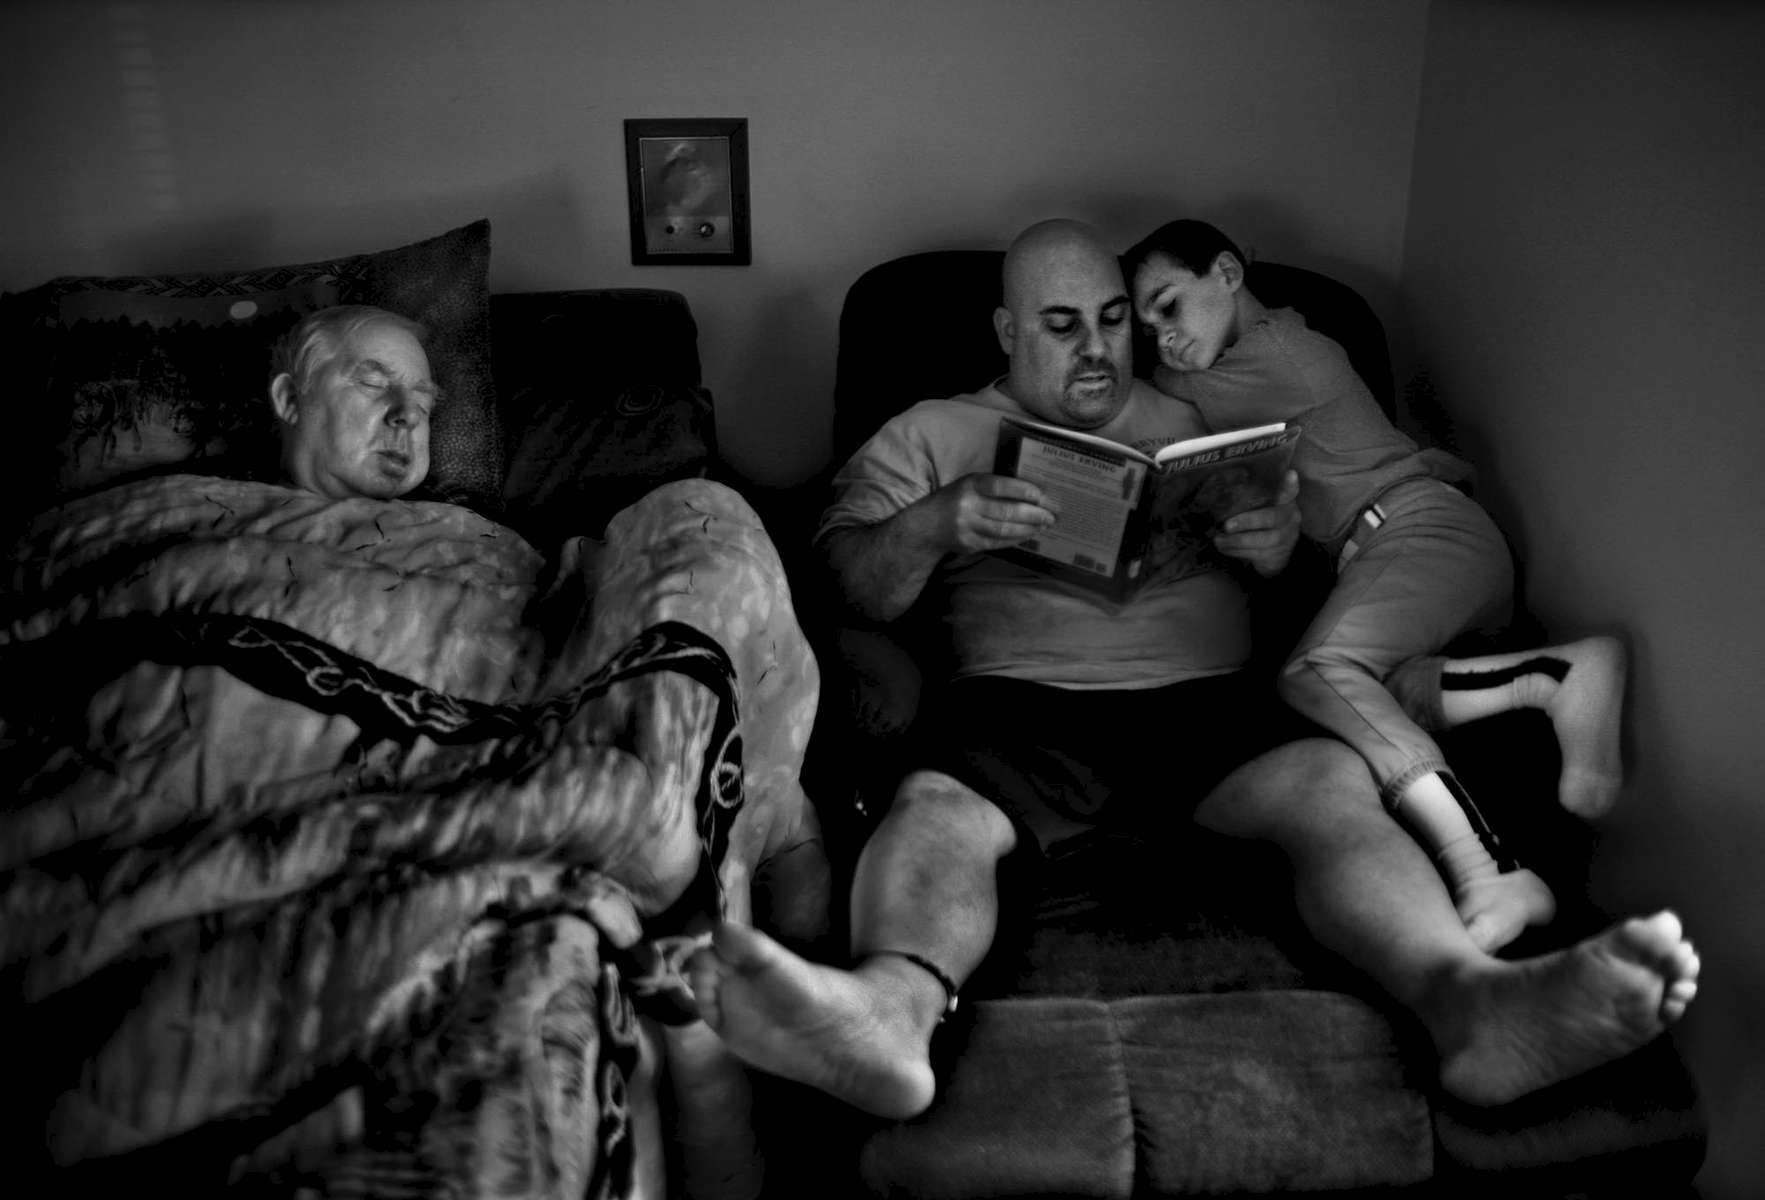 Jim Kennedy reads to his son, Elijah, before his baseball game. At left is Kennedy's father, William, who is dying of cancer. Kennedy is a single father who is taking care of both son and father at the same time.